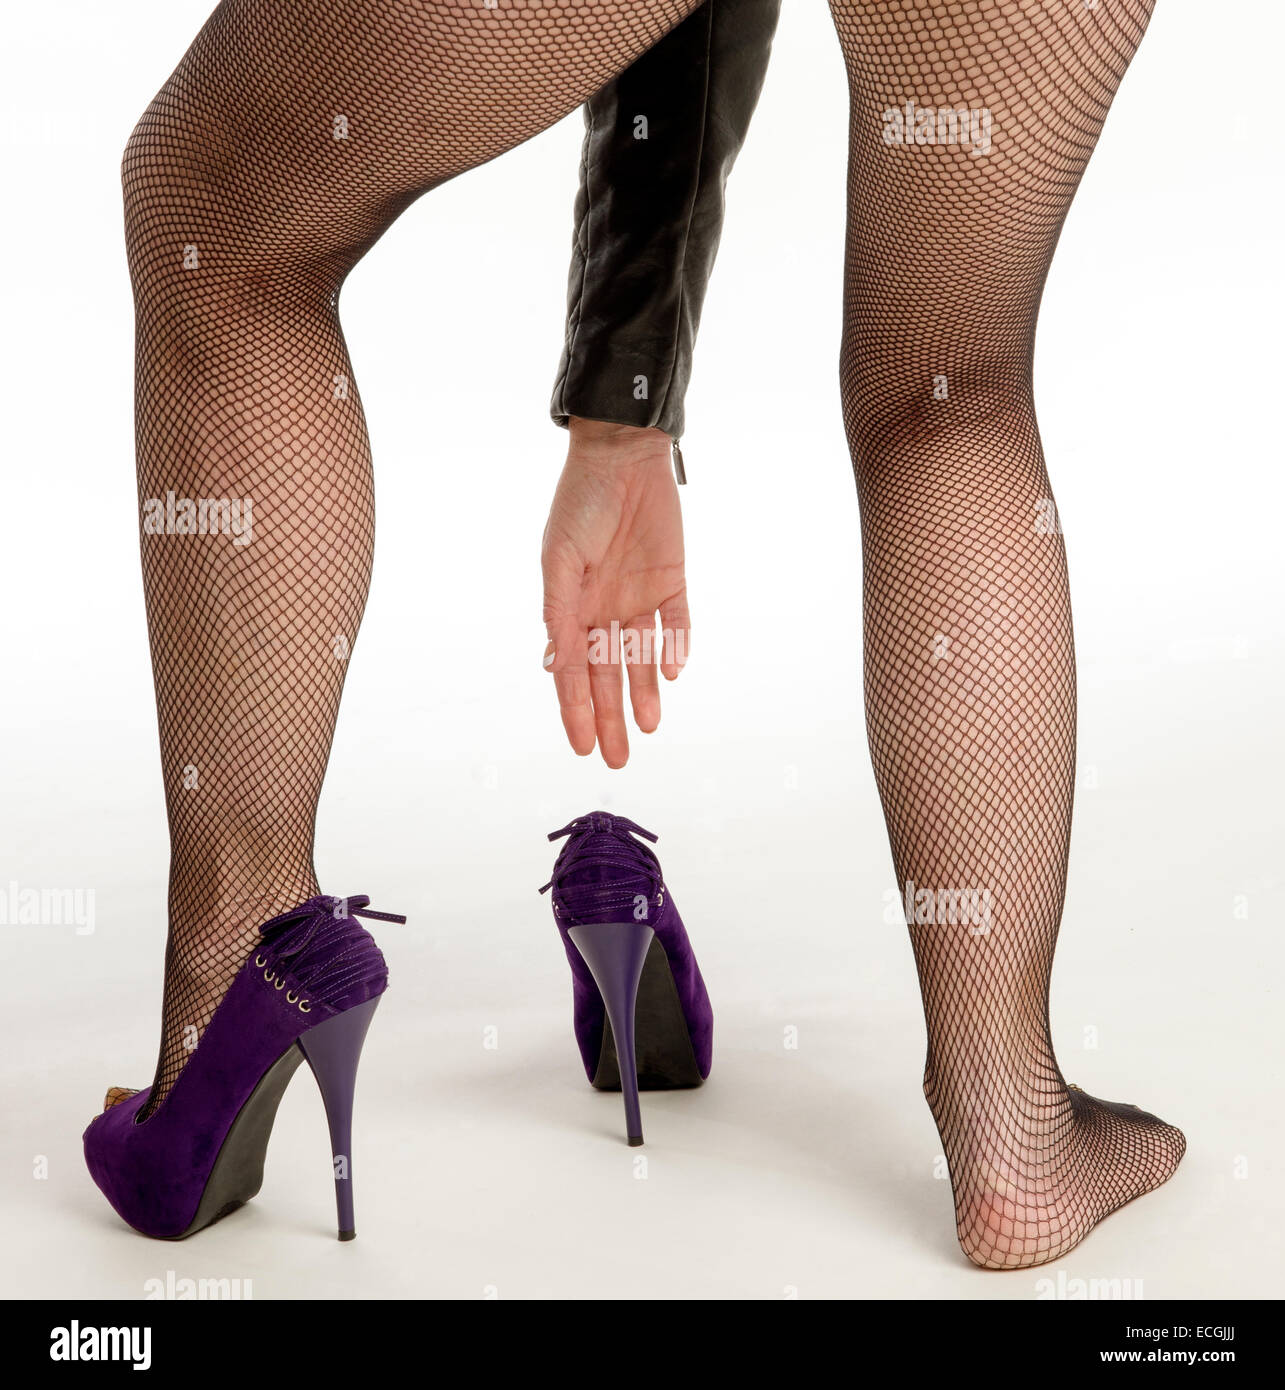 Woman putting on high heel shoes wearing black fishnet tights - Stock Image